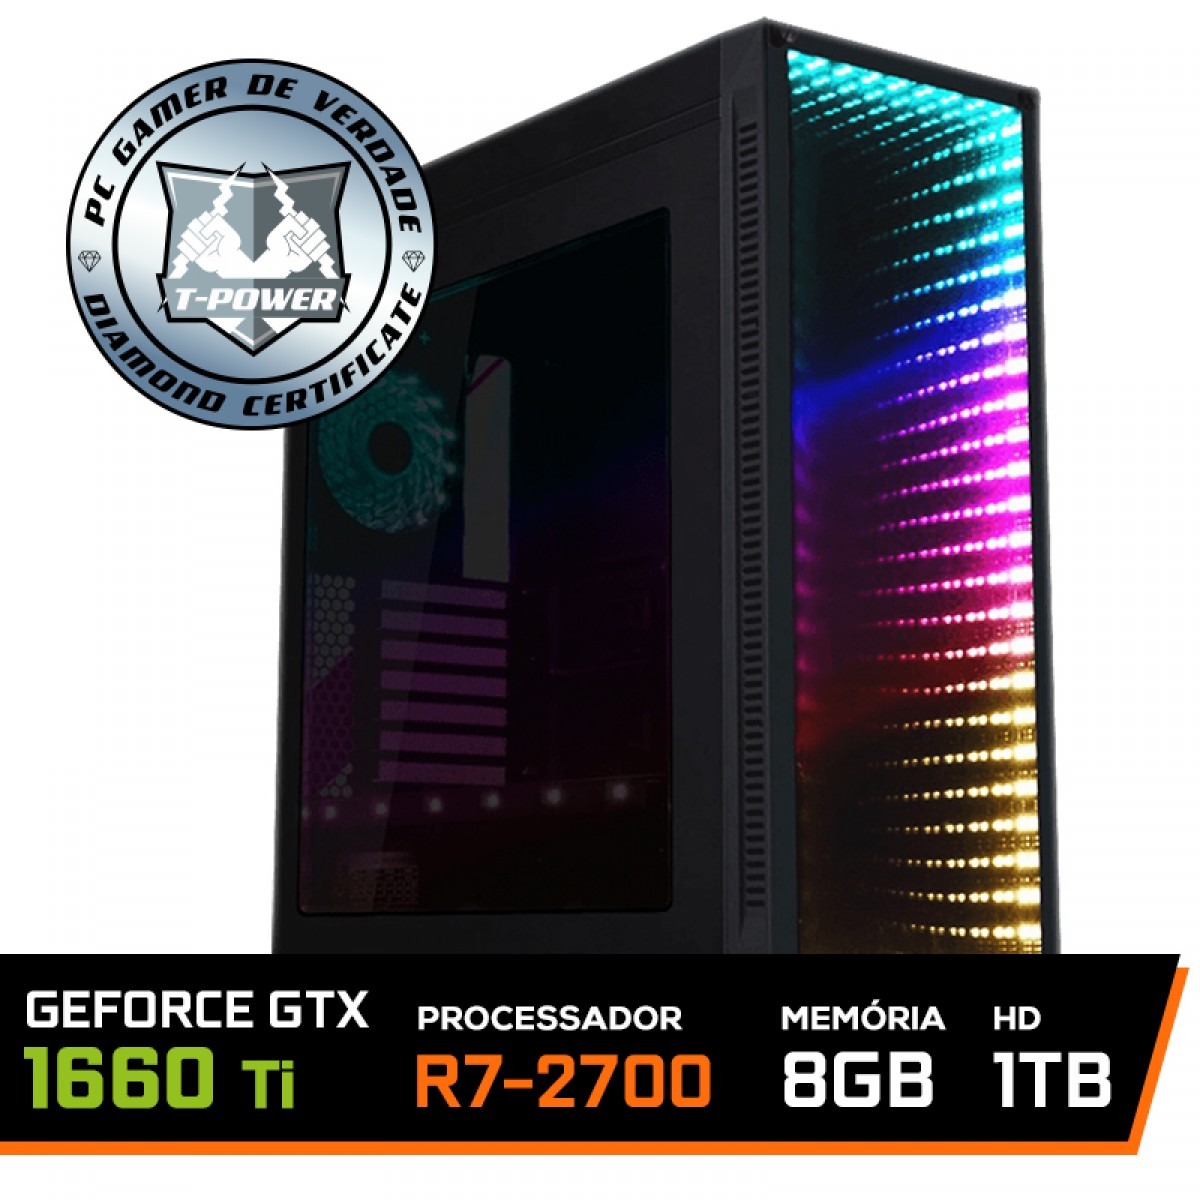 Pc Gamer T-Power Colonel Lvl-2 AMD Ryzen 7 2700 / GeForce GTX 1660 6GB / DDR4 8GB / HD 1TB / 600W